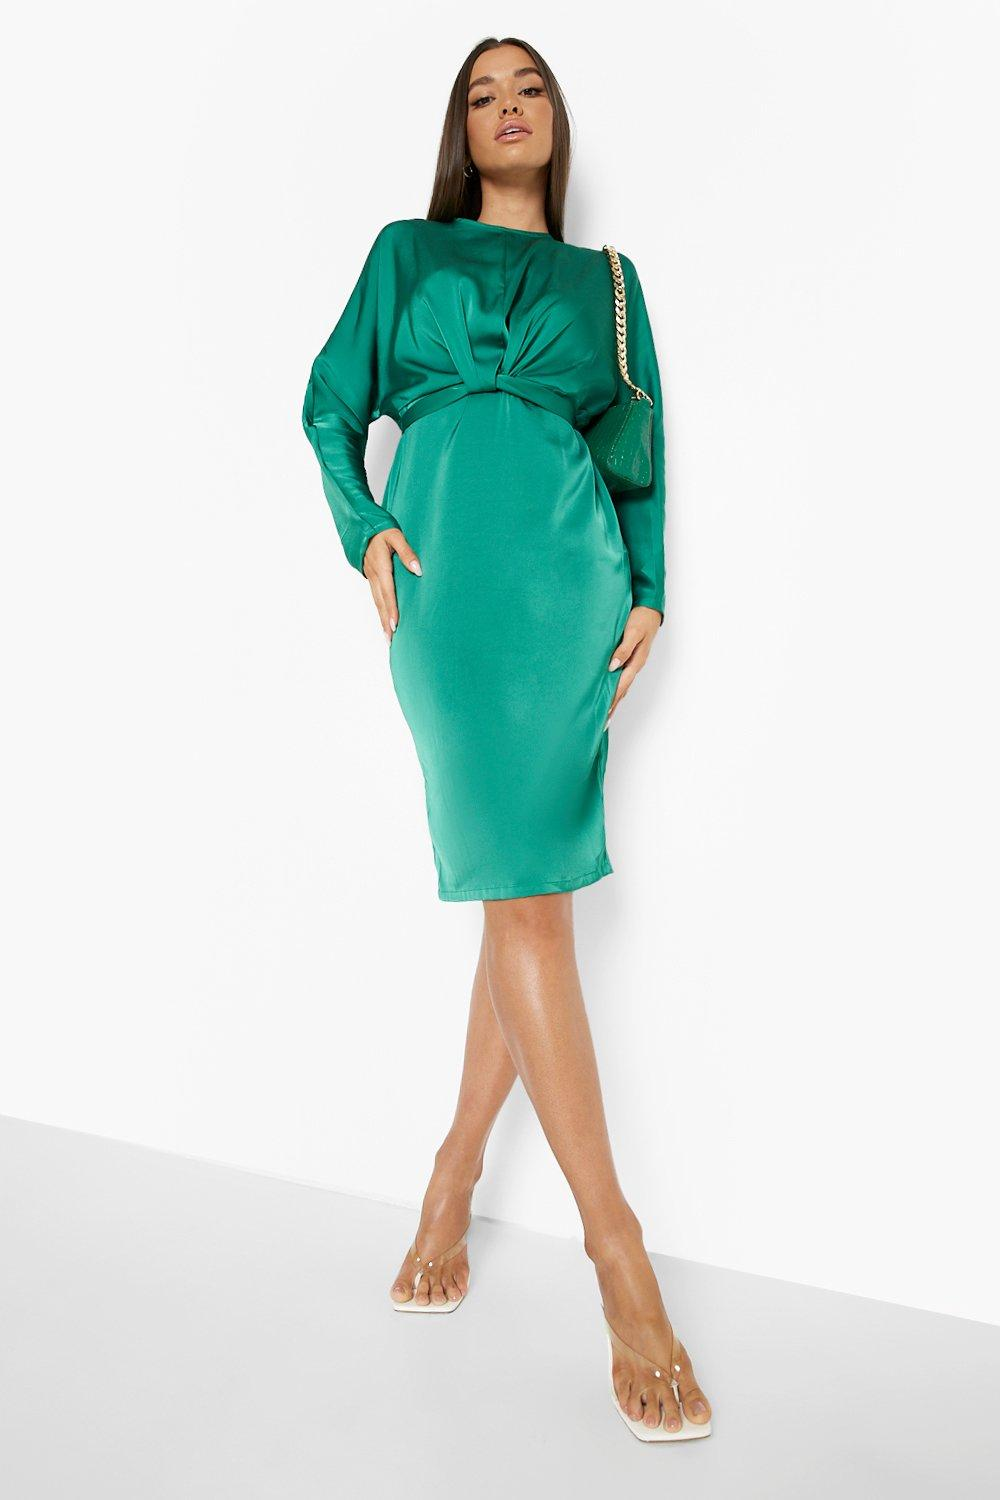 80s Dresses | Casual to Party Dresses Womens Satin Wrap Detail Tie Back Midi Dress - Green - 14 $28.00 AT vintagedancer.com